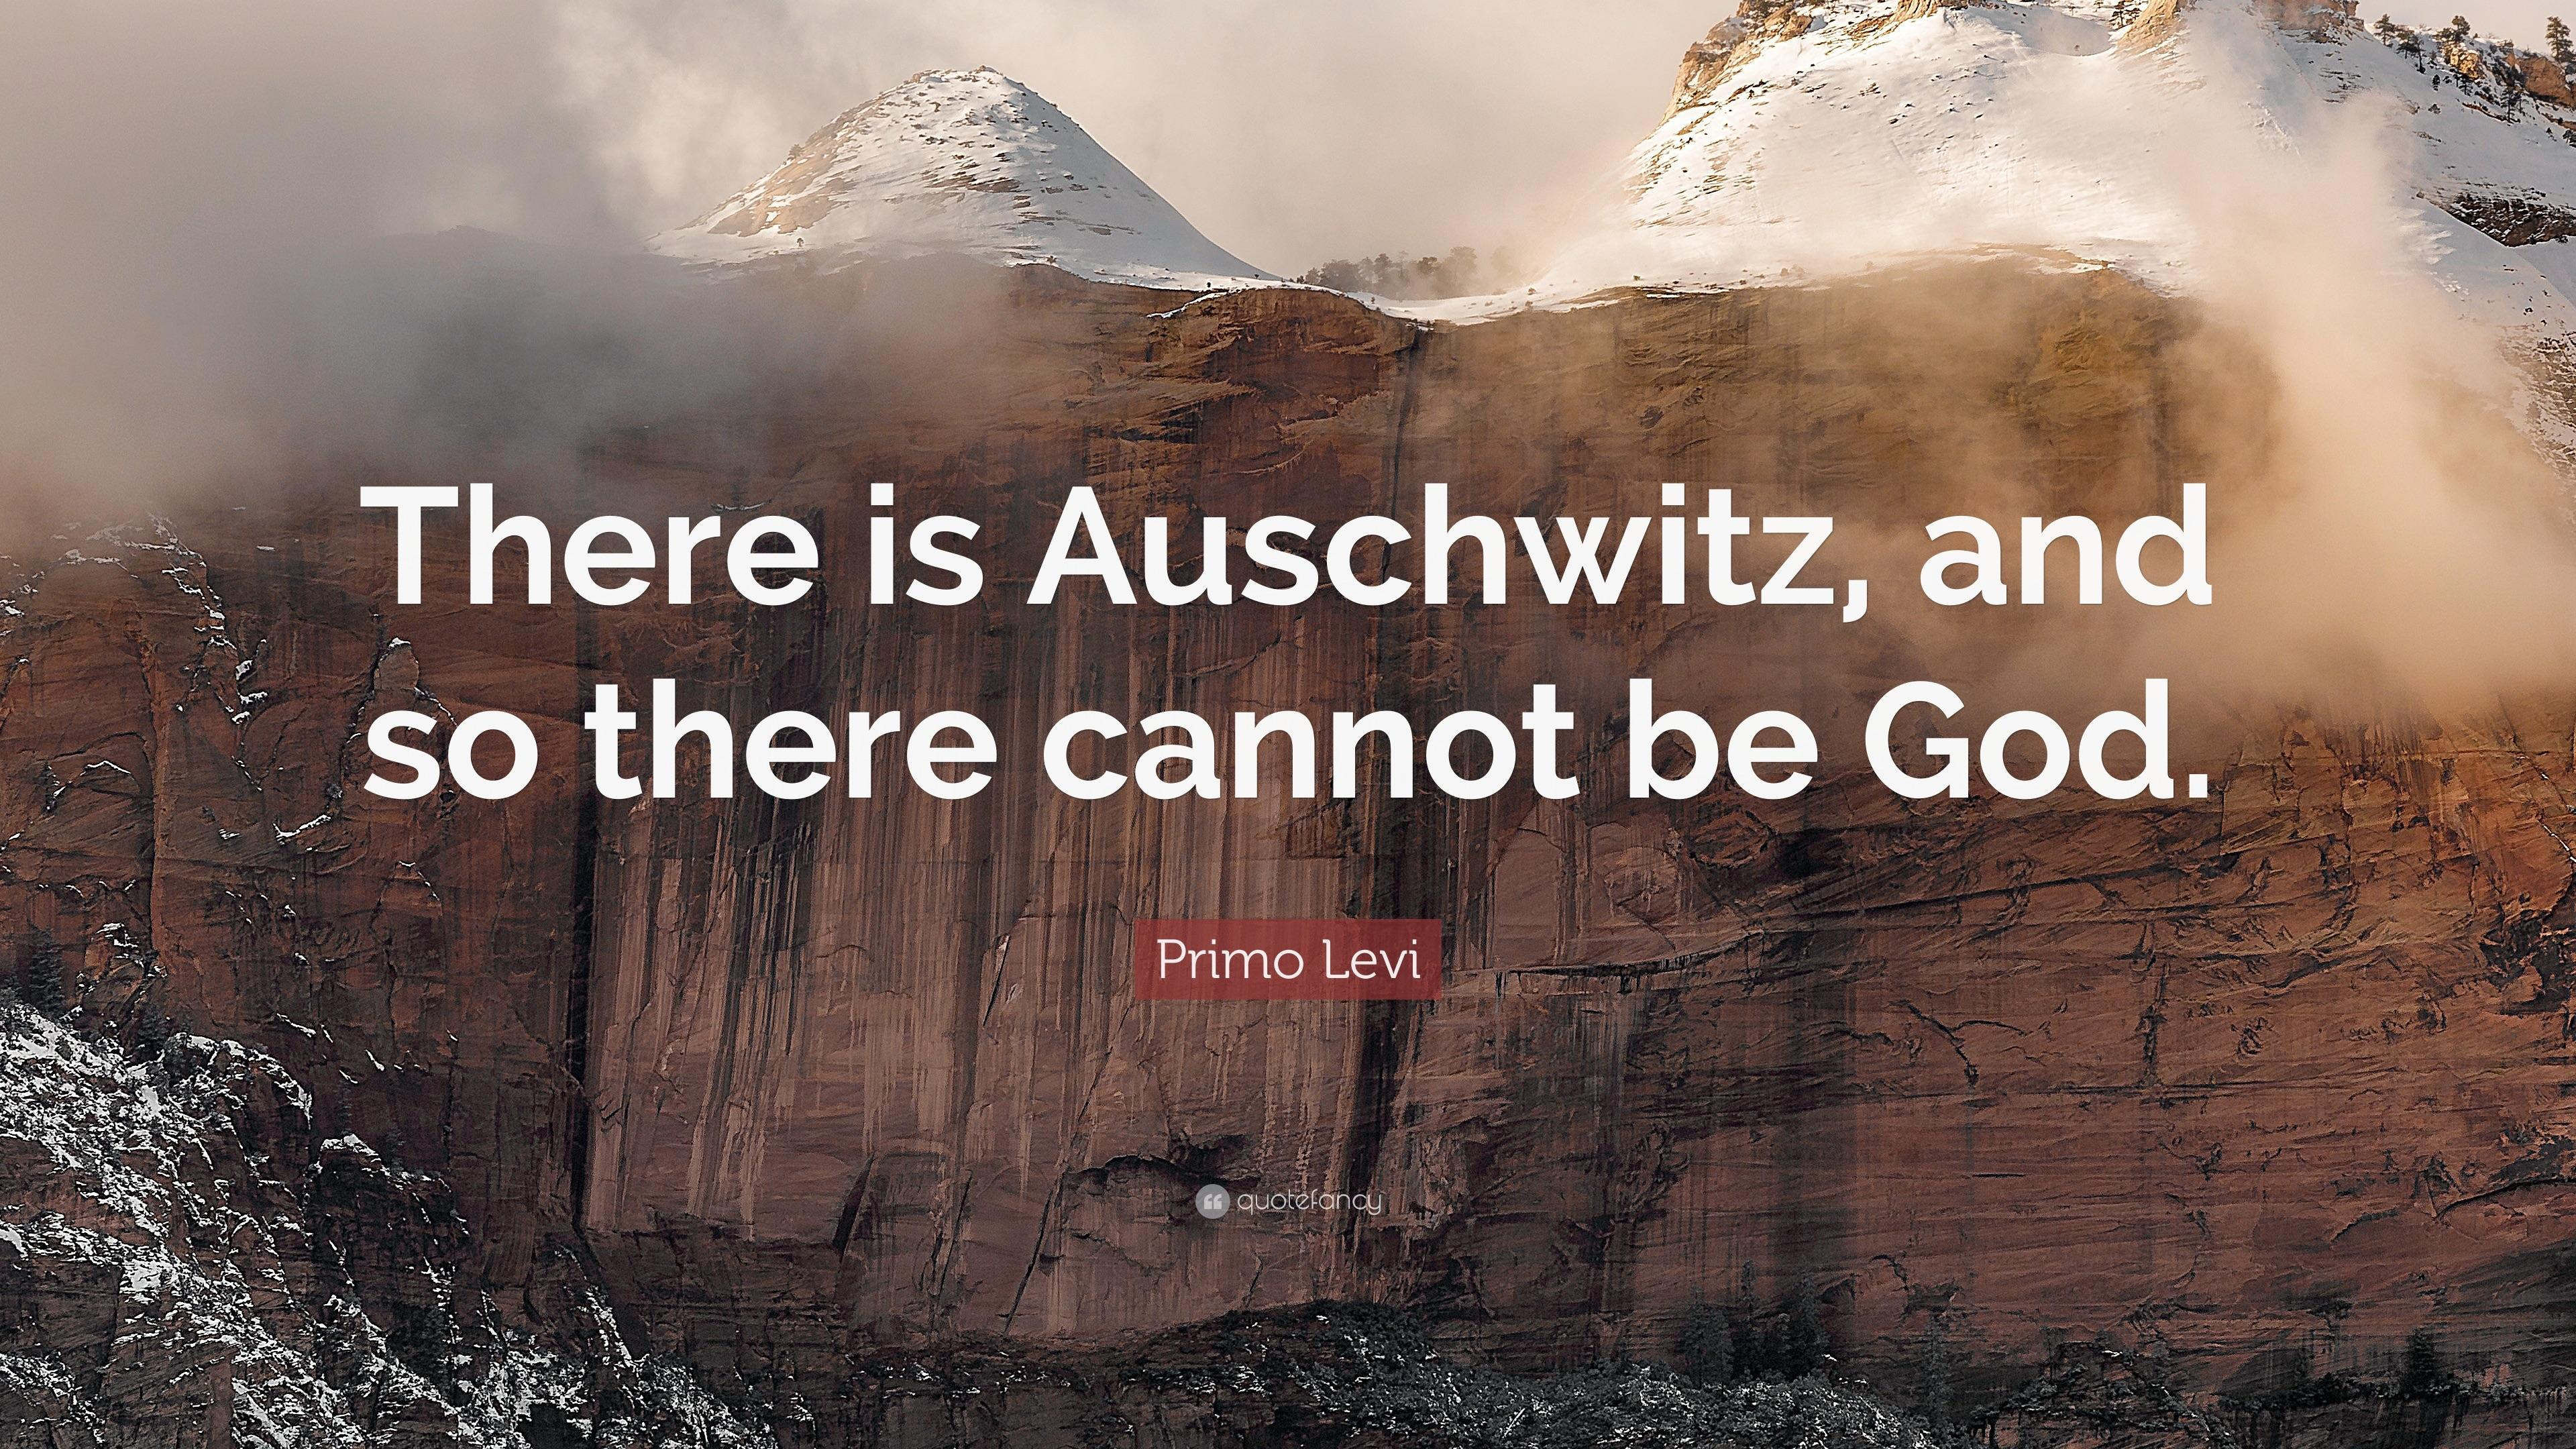 """There is Auschwitz, and so there cannot be God."" – Promo Levi [3840×2160]"